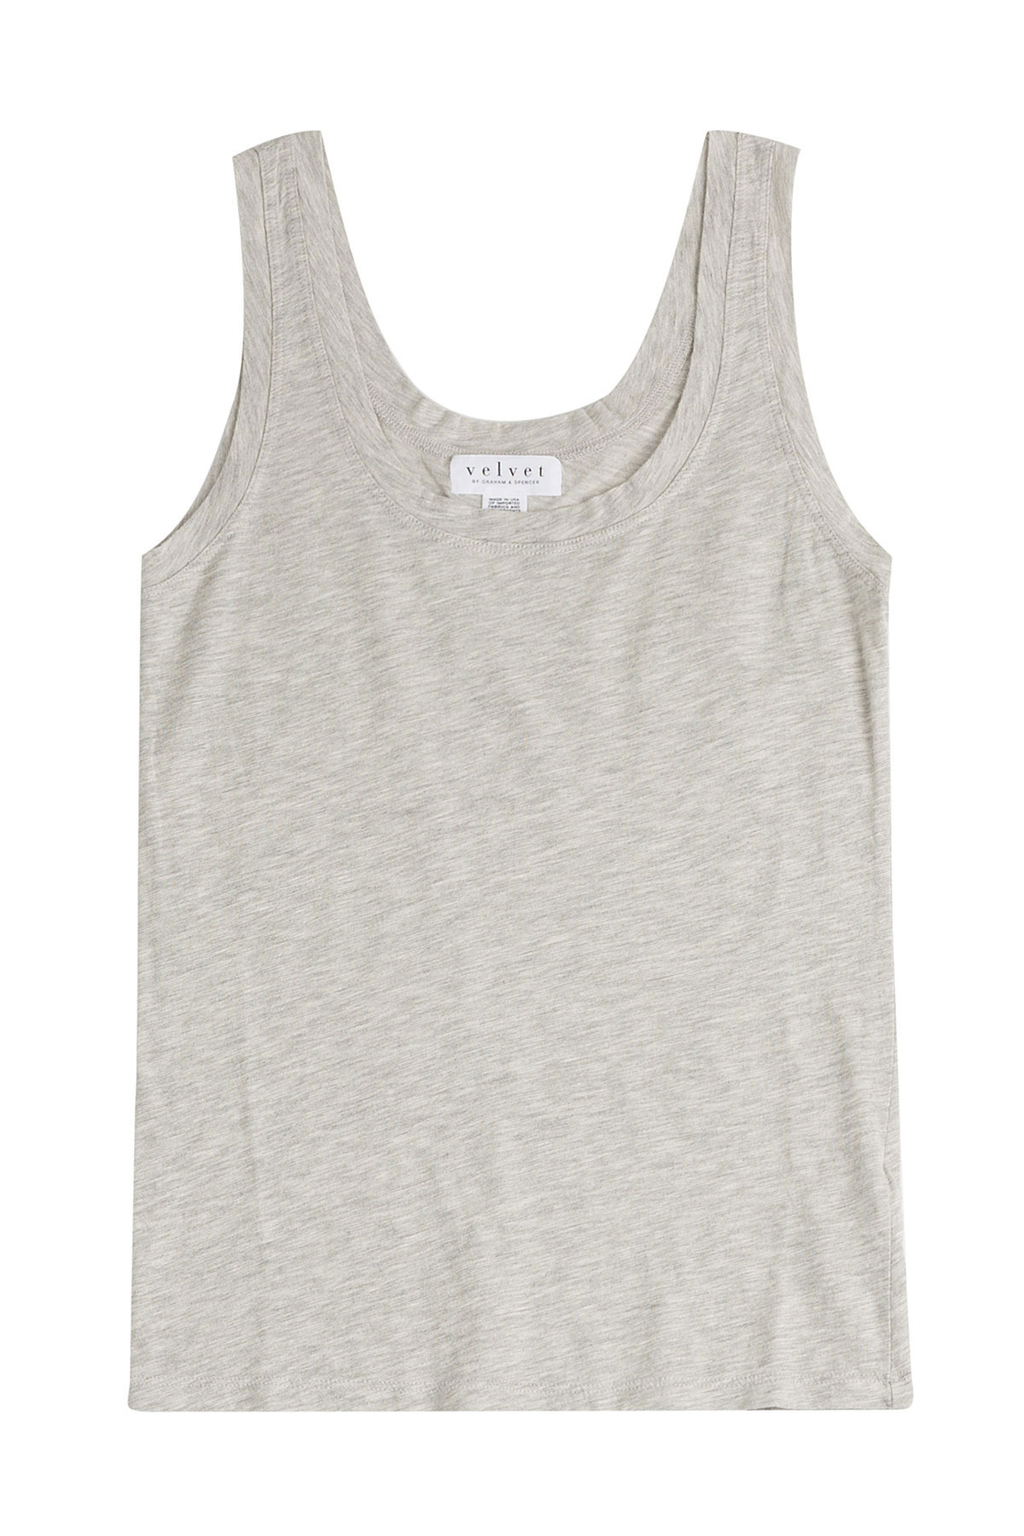 Cotton Blend Tank - sleeve style: standard vest straps/shoulder straps; pattern: plain; style: vest top; back detail: back revealing; predominant colour: mid grey; occasions: casual, creative work; length: standard; neckline: scoop; fibres: cotton - stretch; fit: body skimming; sleeve length: sleeveless; pattern type: fabric; texture group: jersey - stretchy/drapey; season: s/s 2016; wardrobe: basic